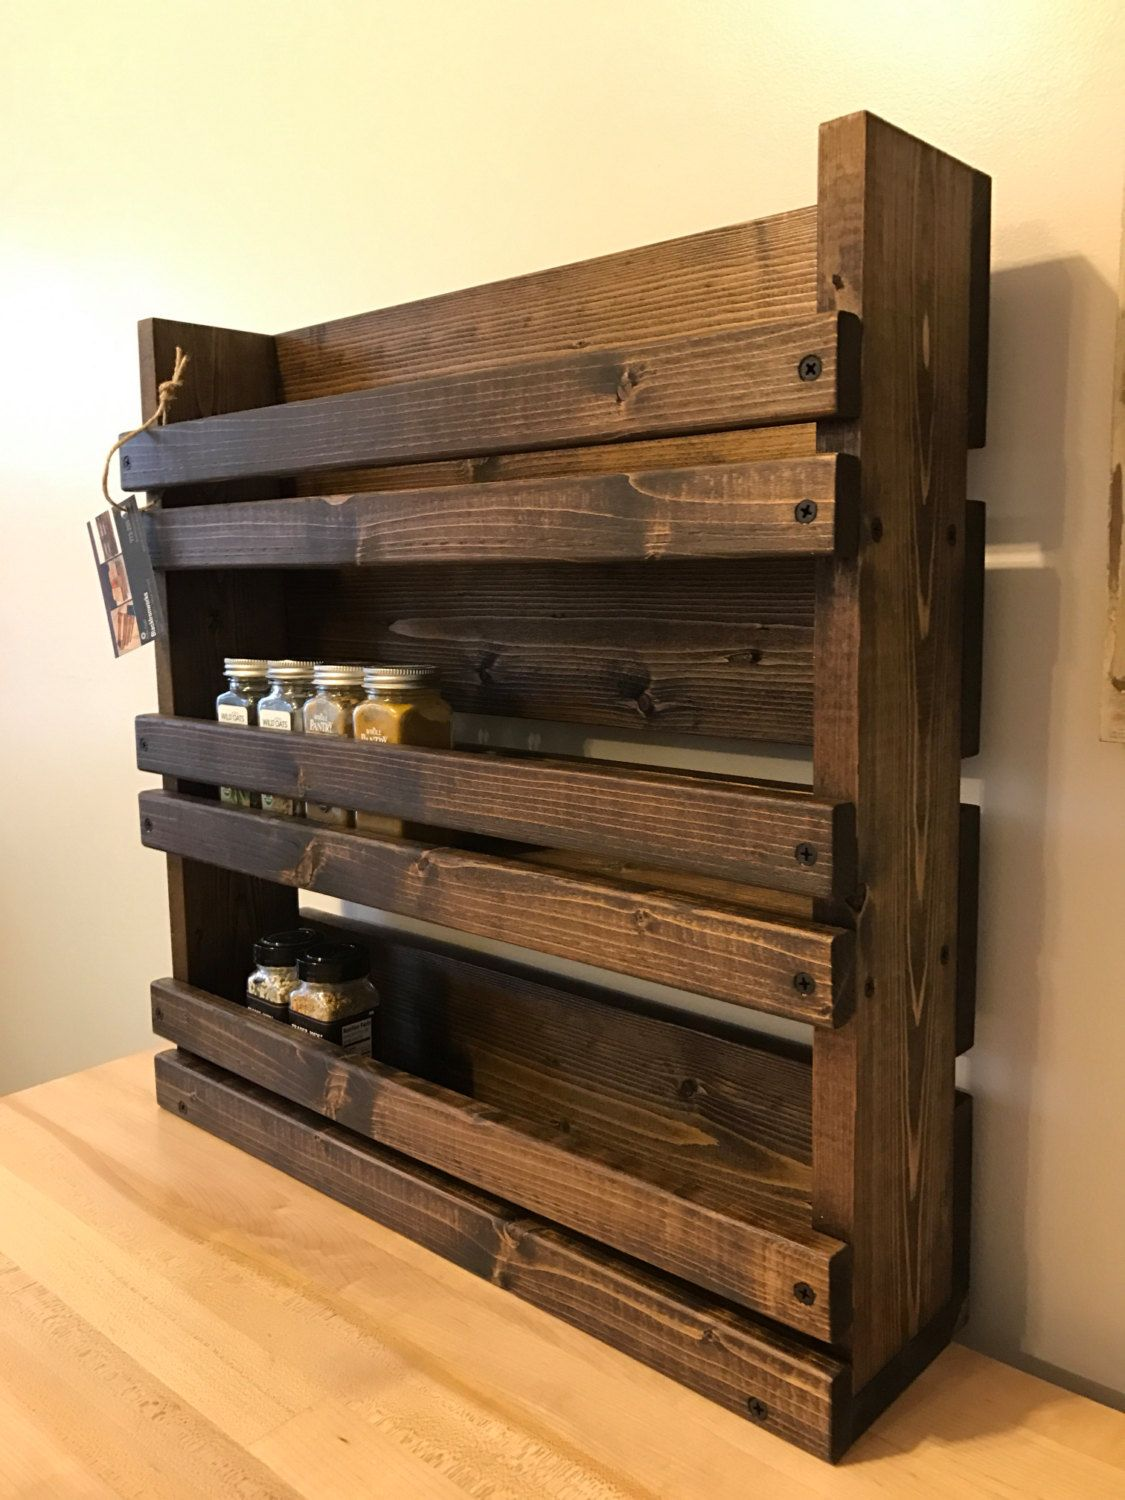 Wood Spice Rack For Wall Pleasing Spice Up Your Kitchen With Our Simple And Rustic Style Solid Wood Design Ideas